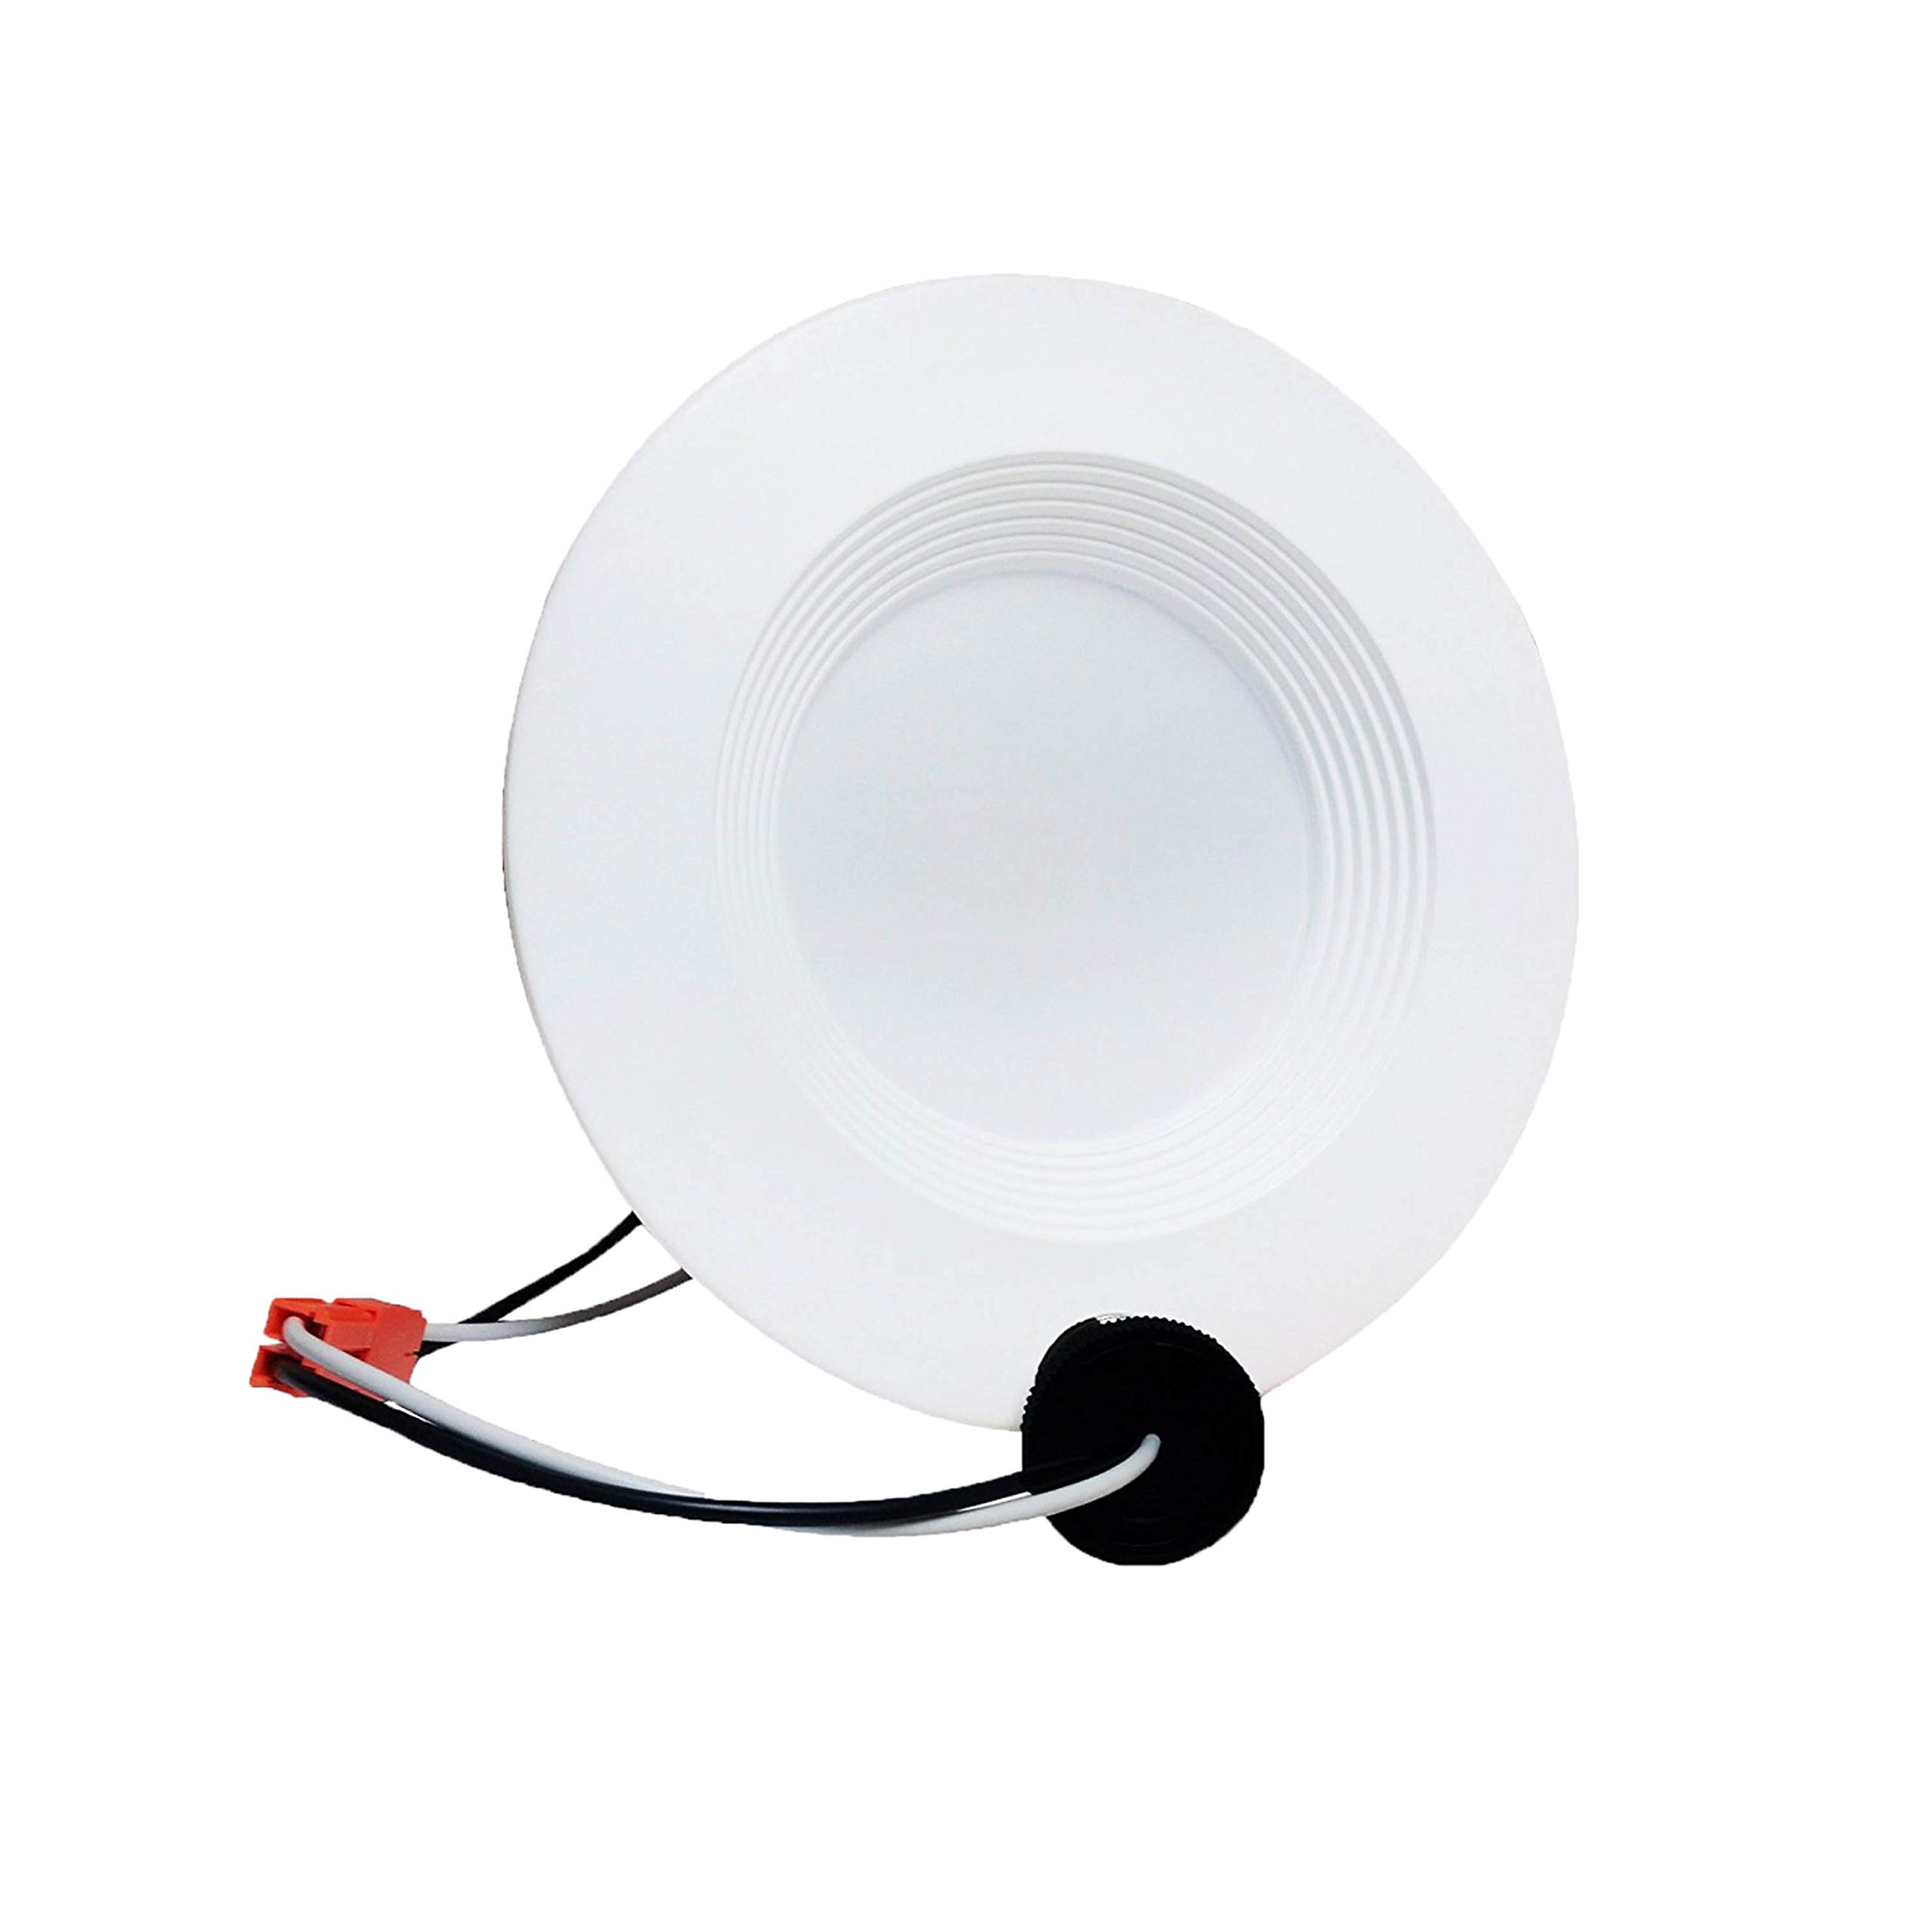 5''/6'' NG LED Baffle Trim Downlight,1000 Lumens, 2700K 15W, Recessed Retrofit, ETL Listed, Energy Stargh (1 Pack)